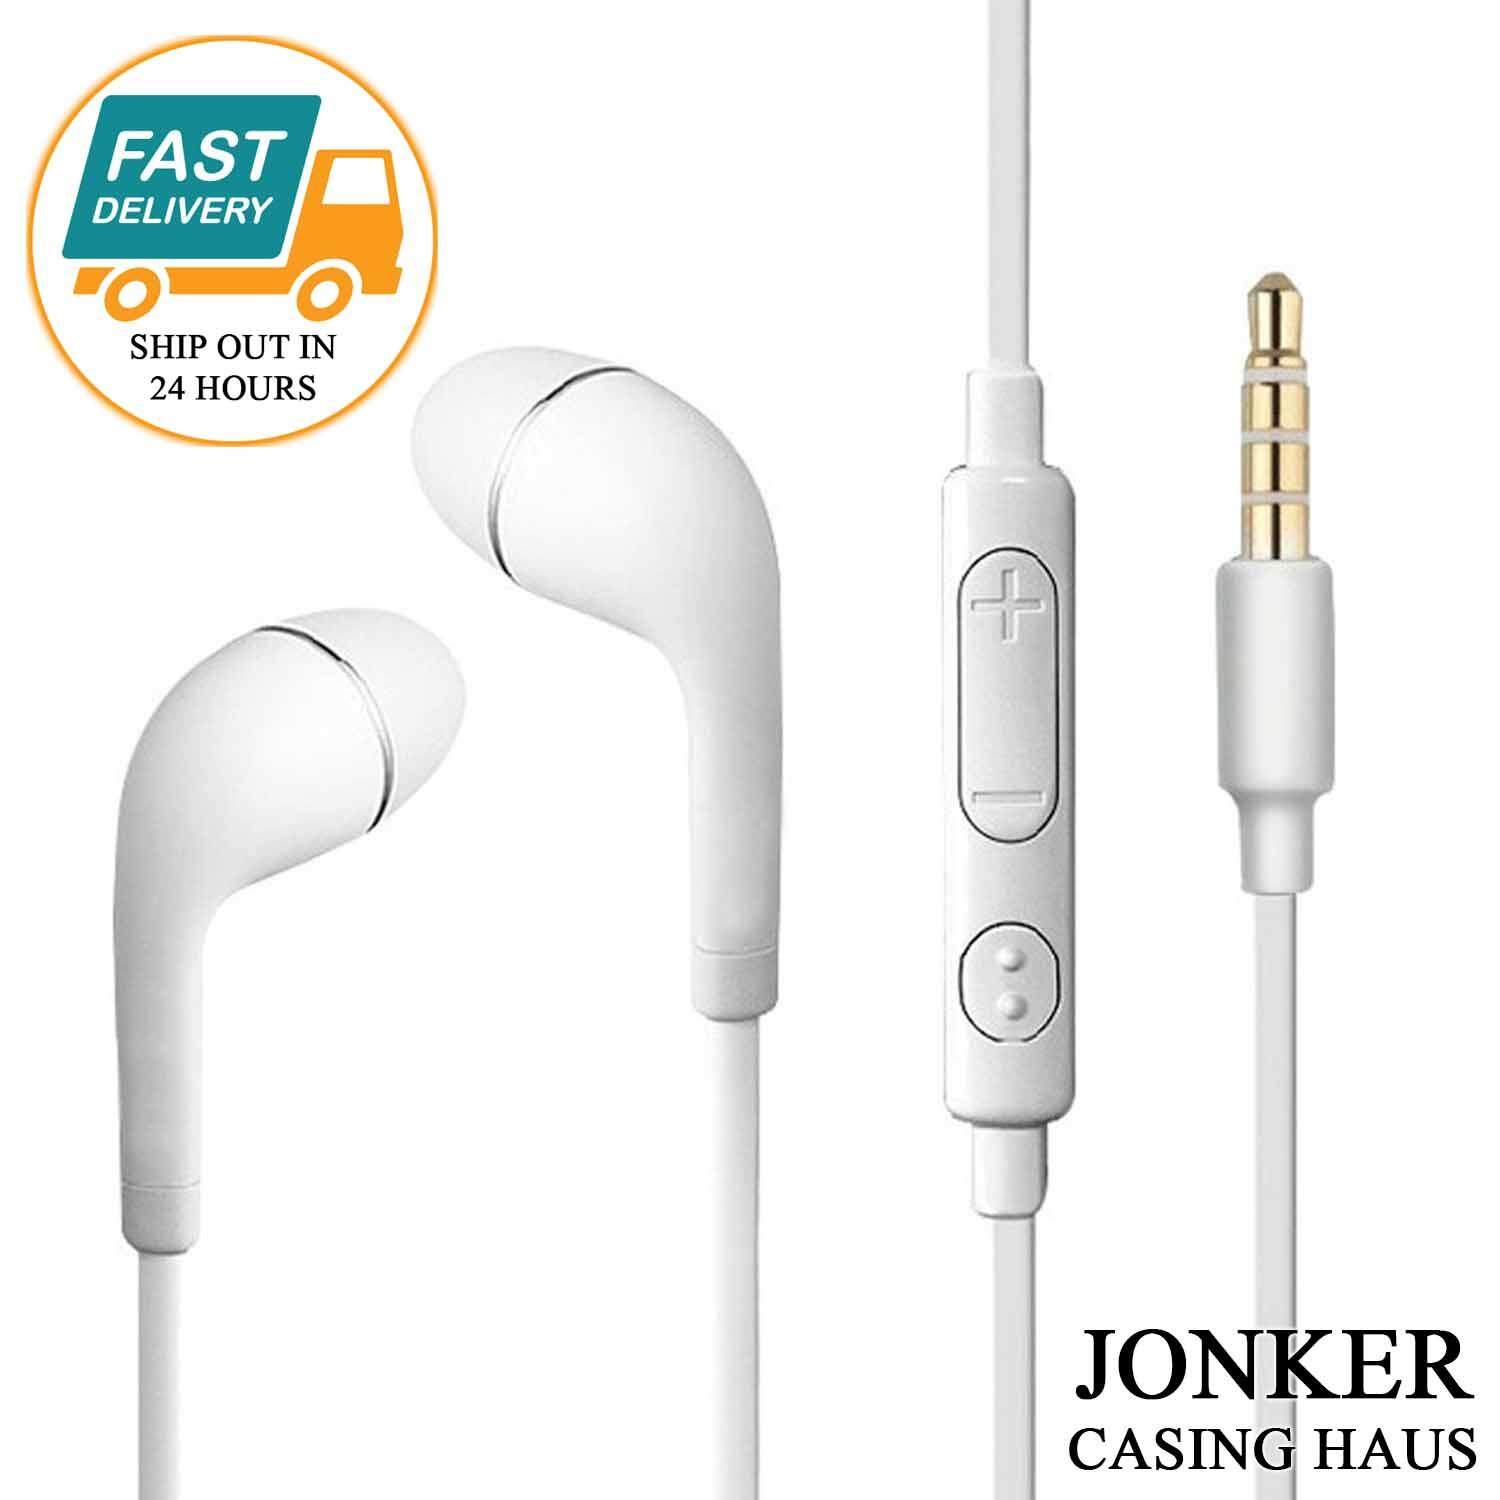 Features Pioneer Gm A5602 2 Channel Bridgeable Amplifier With Bass 1600w 4 Digital Pro Kit Jl 08 Stereo Earphone Volume Control Button Effect